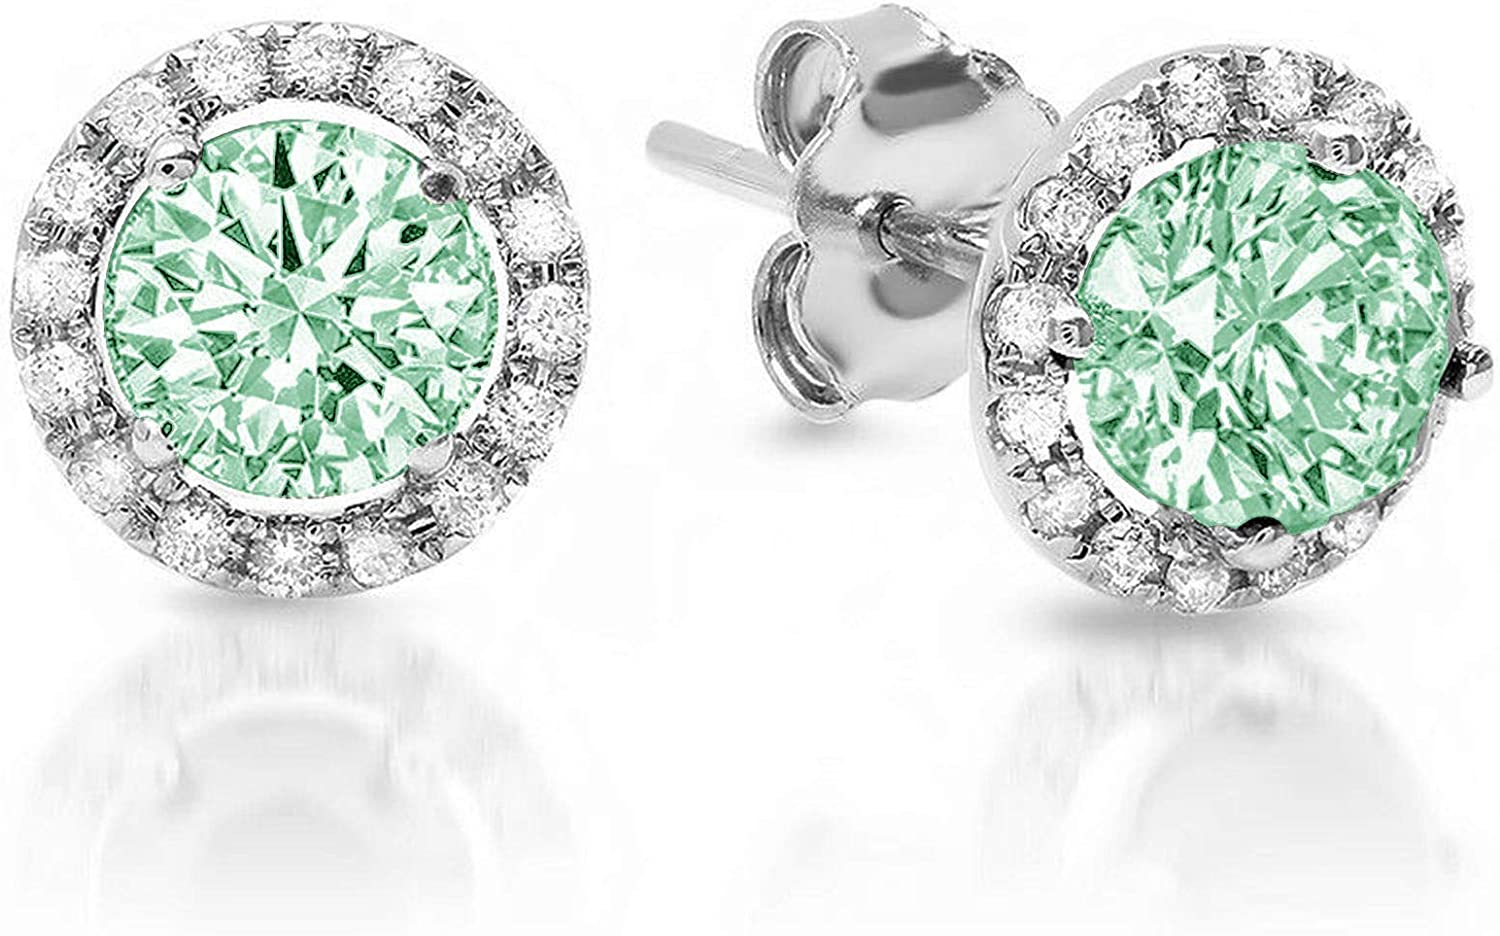 Clara Pucci 1.7 ct Brilliant Round Cut Halo Solitaire Genuine VVS1 Flawless Green Simulated Diamond Gemstone Pair of Solitaire Stud Screw Back Earrings Solid 18K White Gold